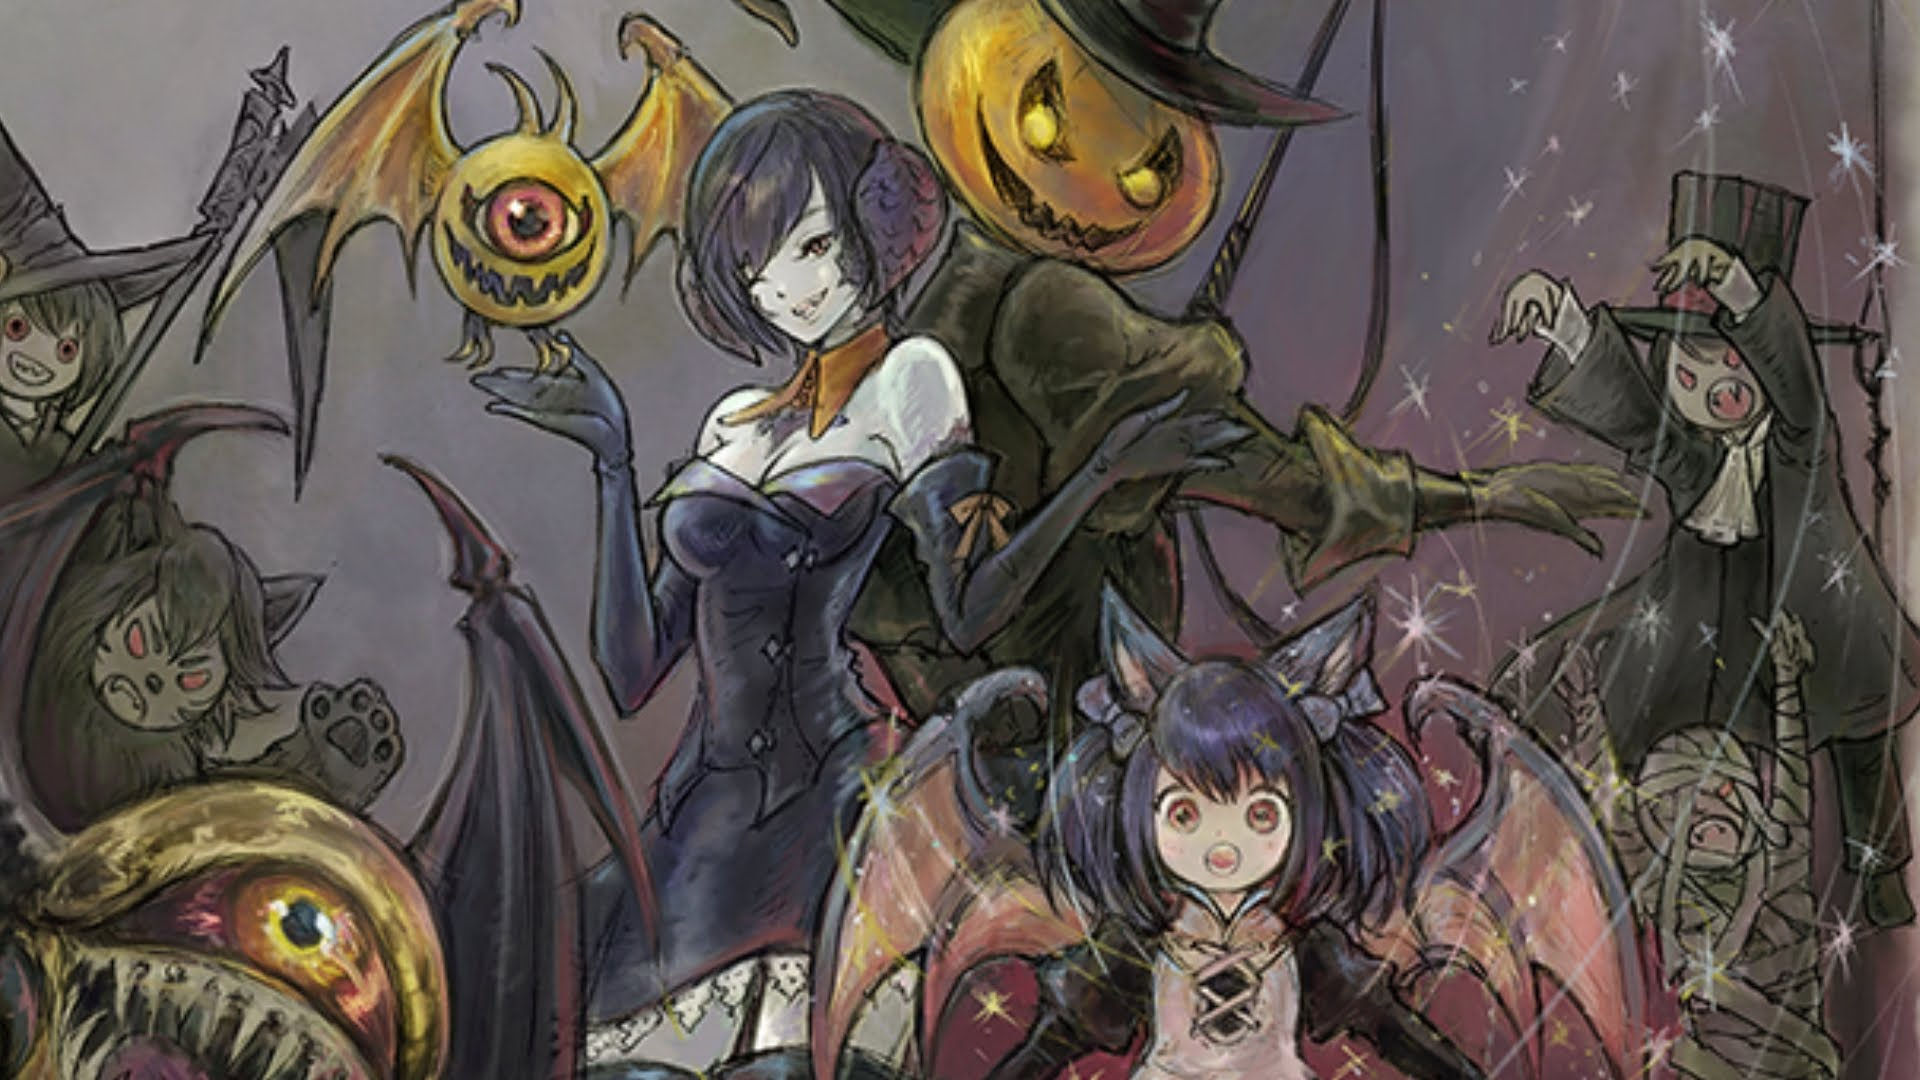 Ffxiv 2020 Halloween Final Fantasy XIV is kicking off its Halloween themed All Saints